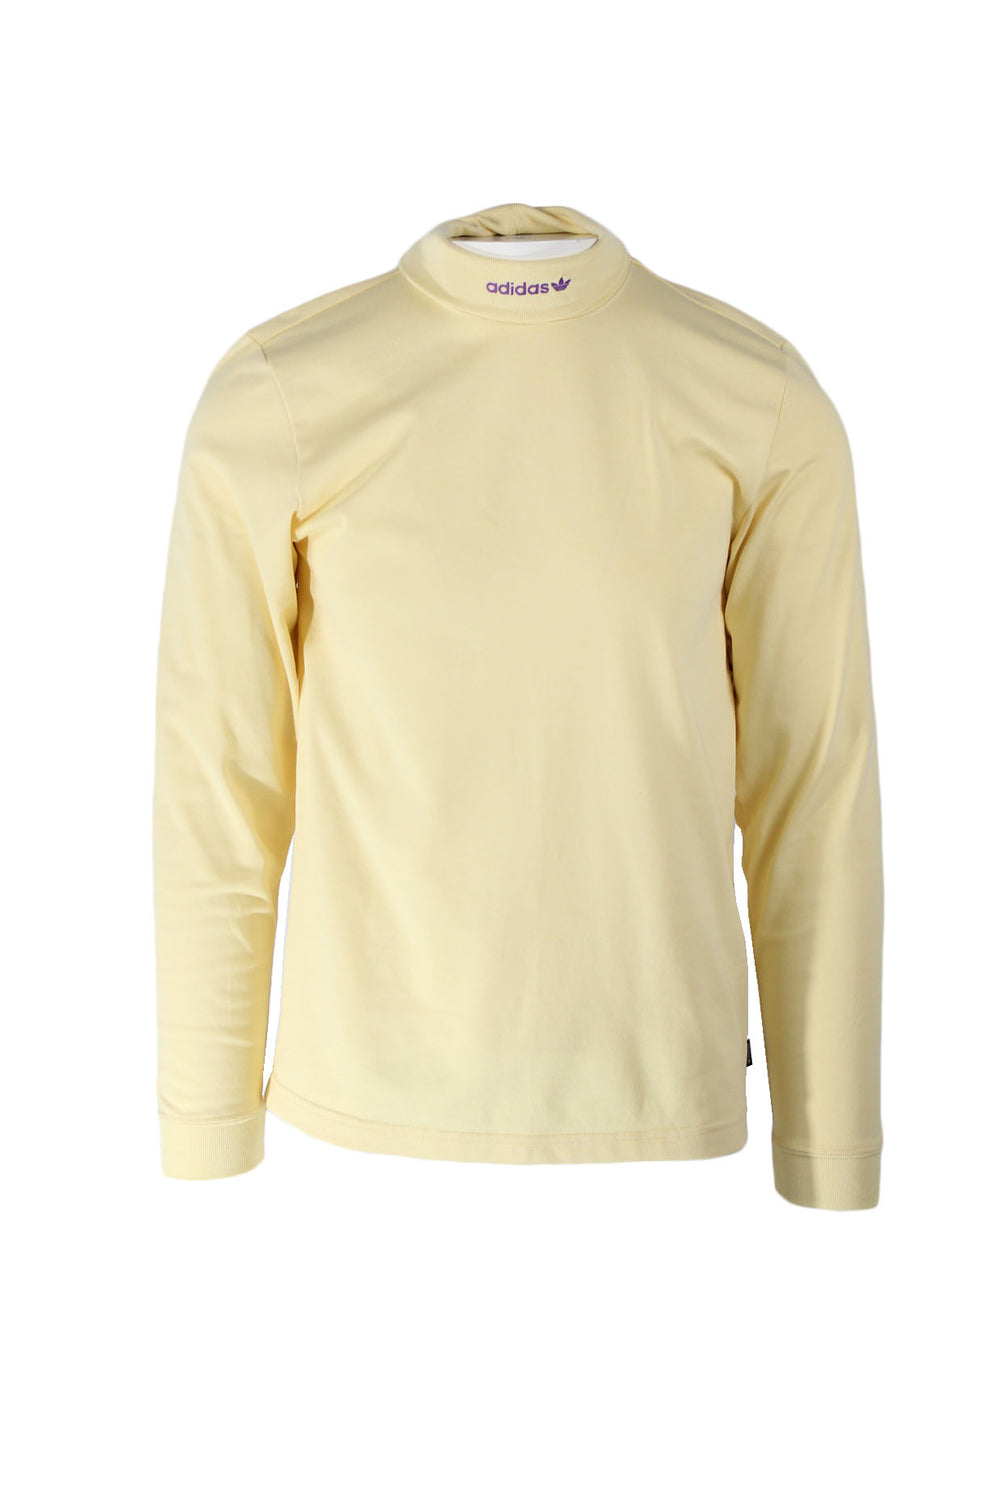 adidas skateboarding light yellow hi-collar long sleeve pullover shirt. features 'adidas' logo embroidered on front of hi-collar with logo tab at left side above hem.